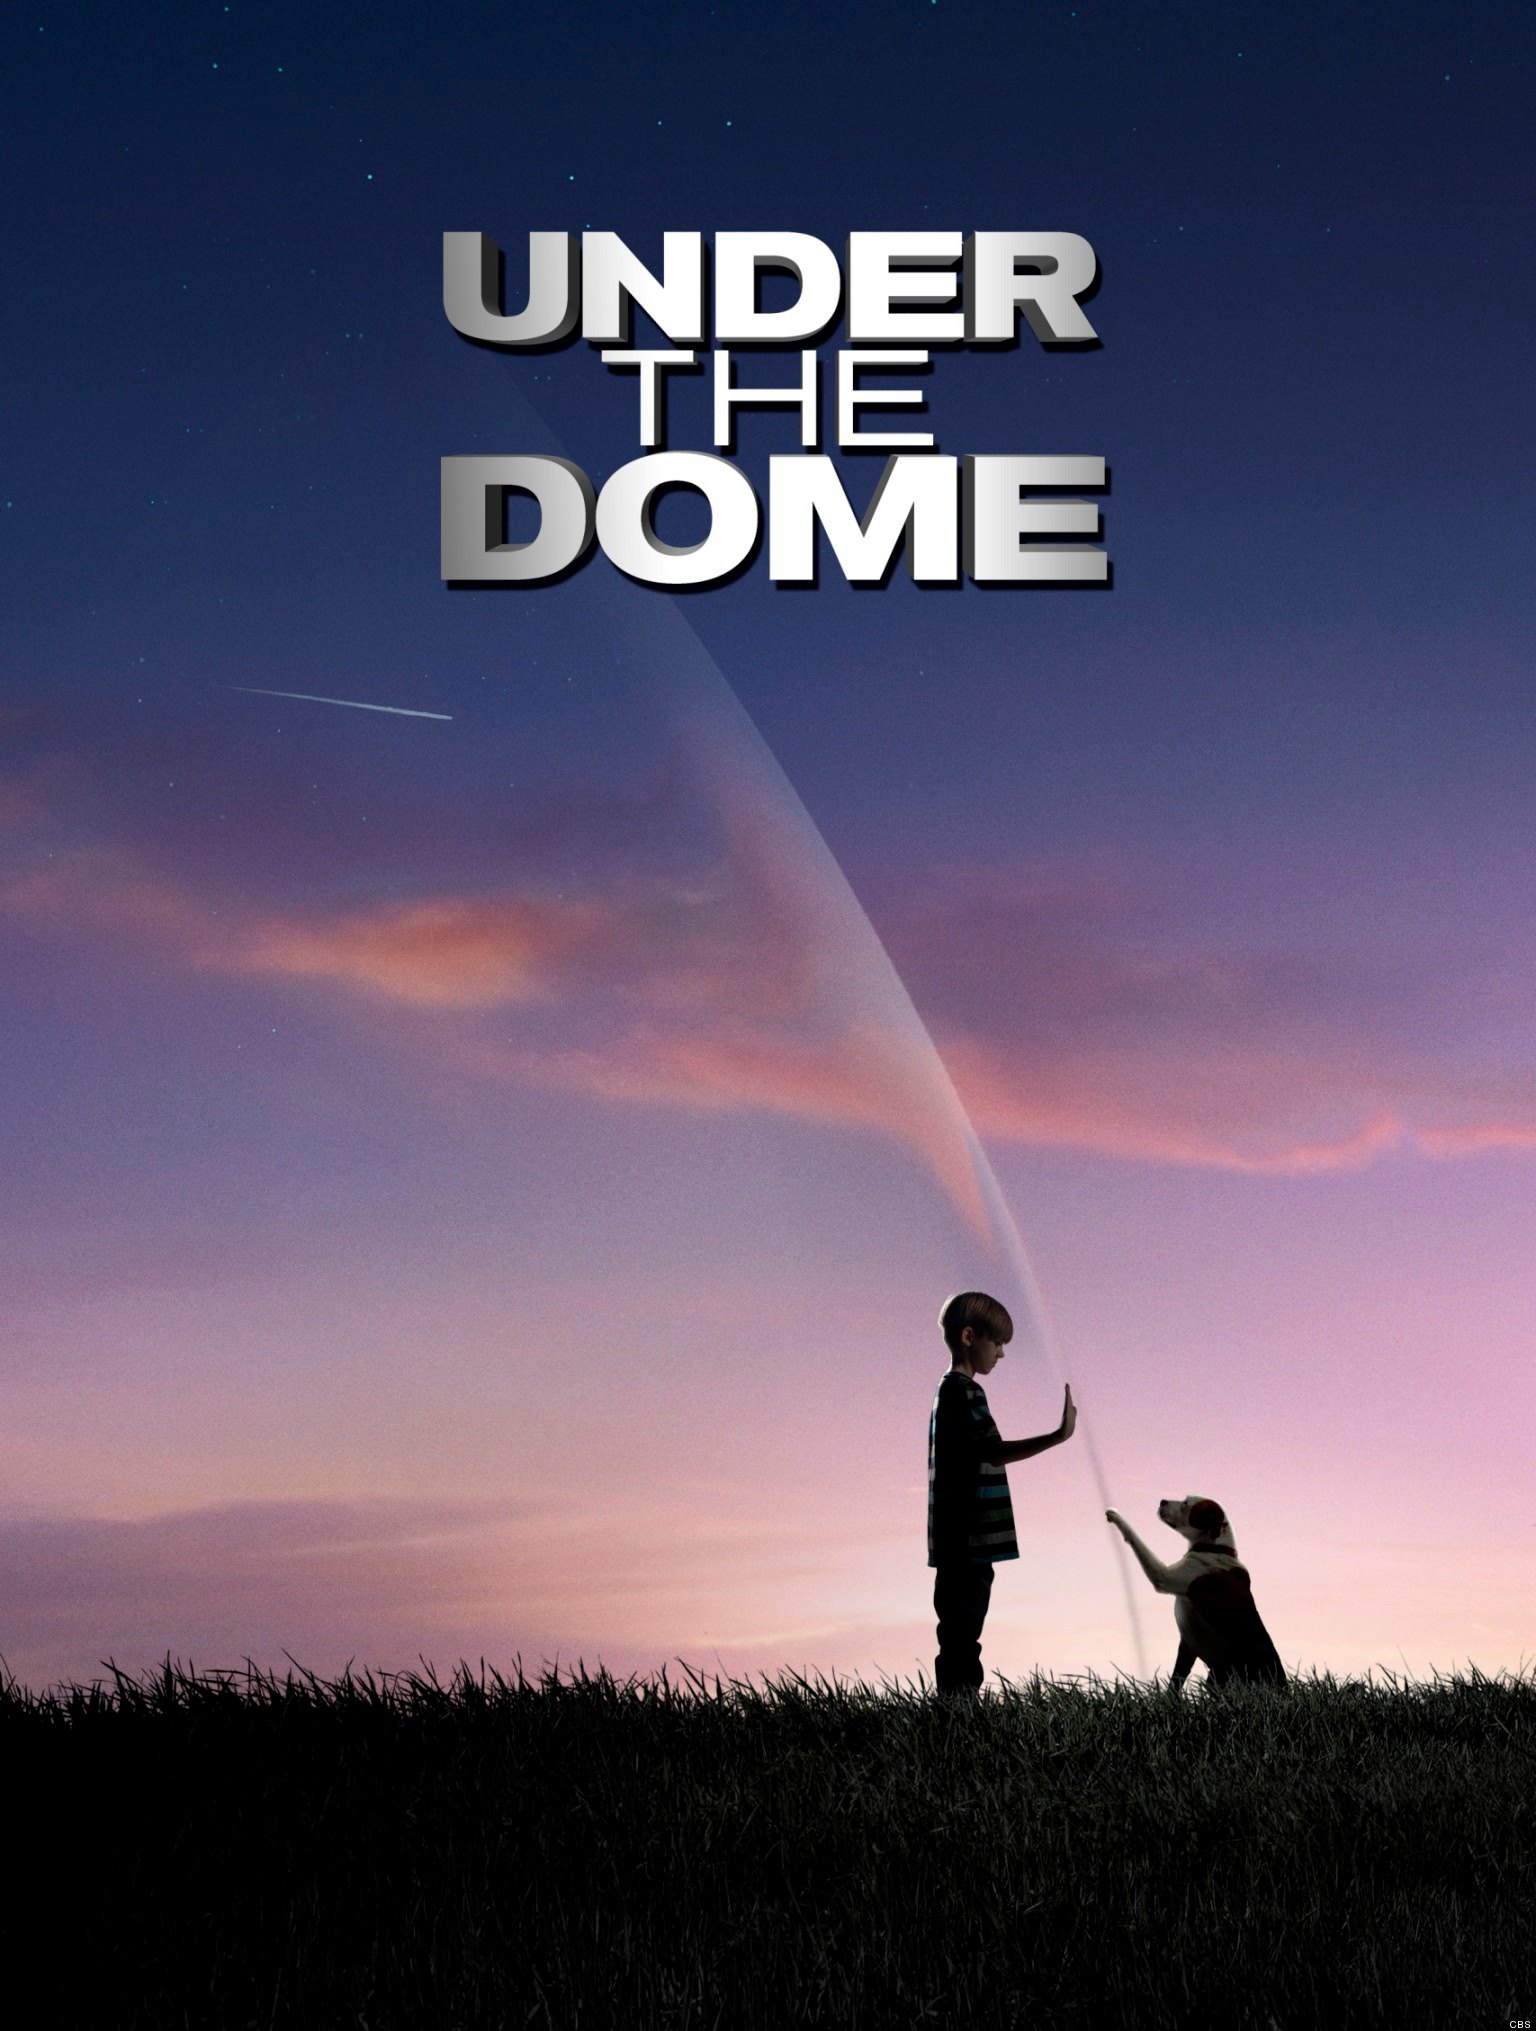 Under The Dome - CBS Poster